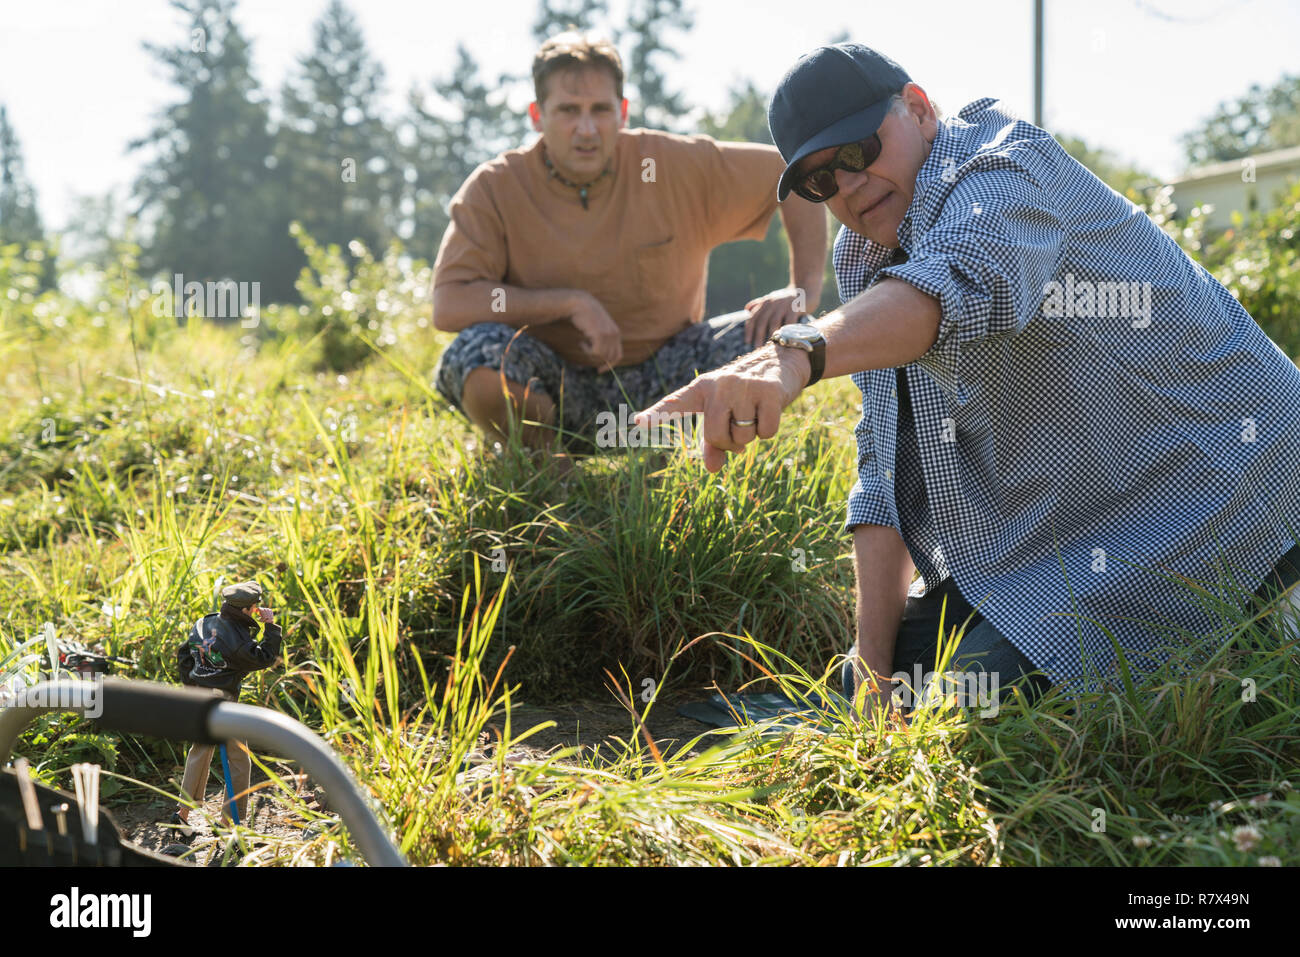 Steve Carell and Director Robert Zemeckis on the set of 'Welcome to Marwen.'  Photo Credit: Universal Pictures and Storyteller Distribution Co., LLC. / The Hollywood Archive - Stock Image